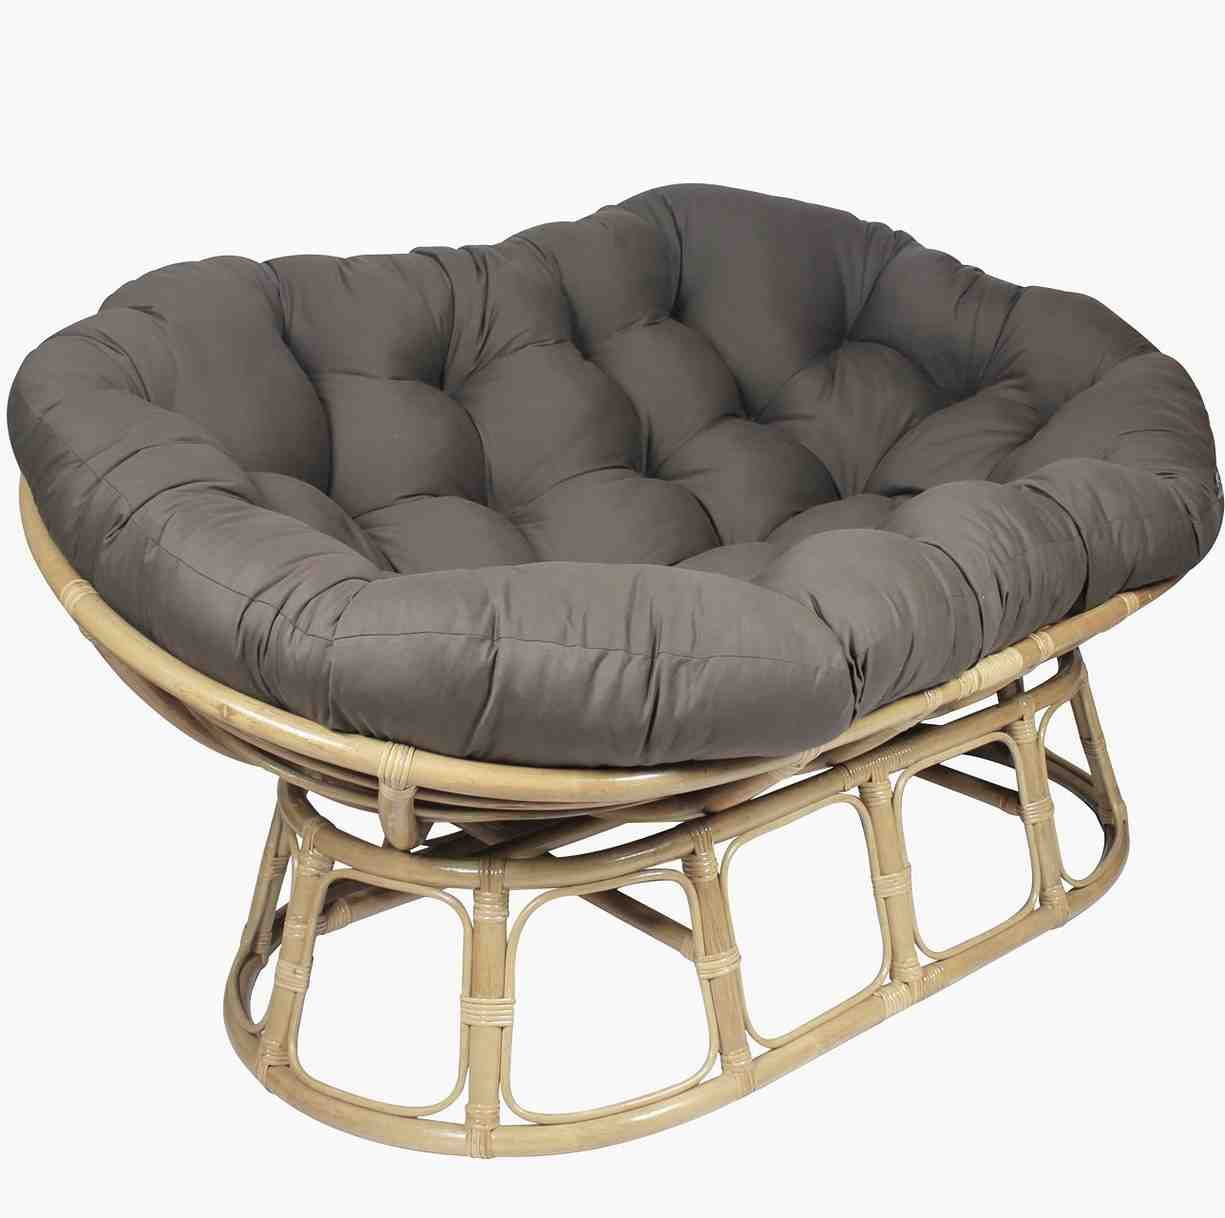 Papisan Chair Double Papasan Chair Cushion Home Furniture Design